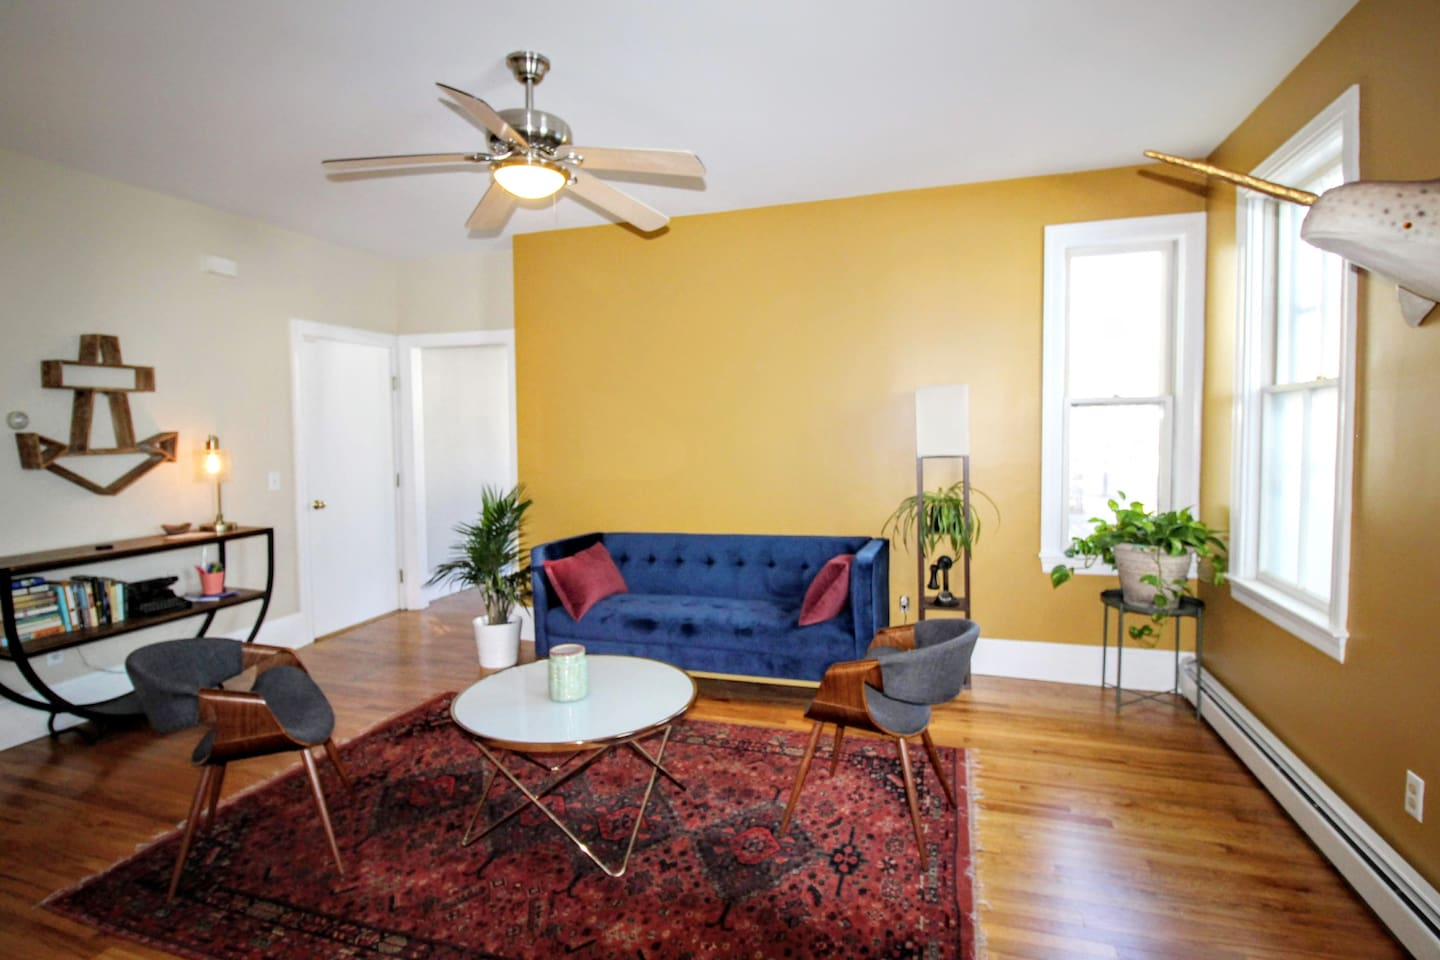 Spacious yet cozy! Relax on the velvet sofa and read a book after exploring all that Providence has to offer.